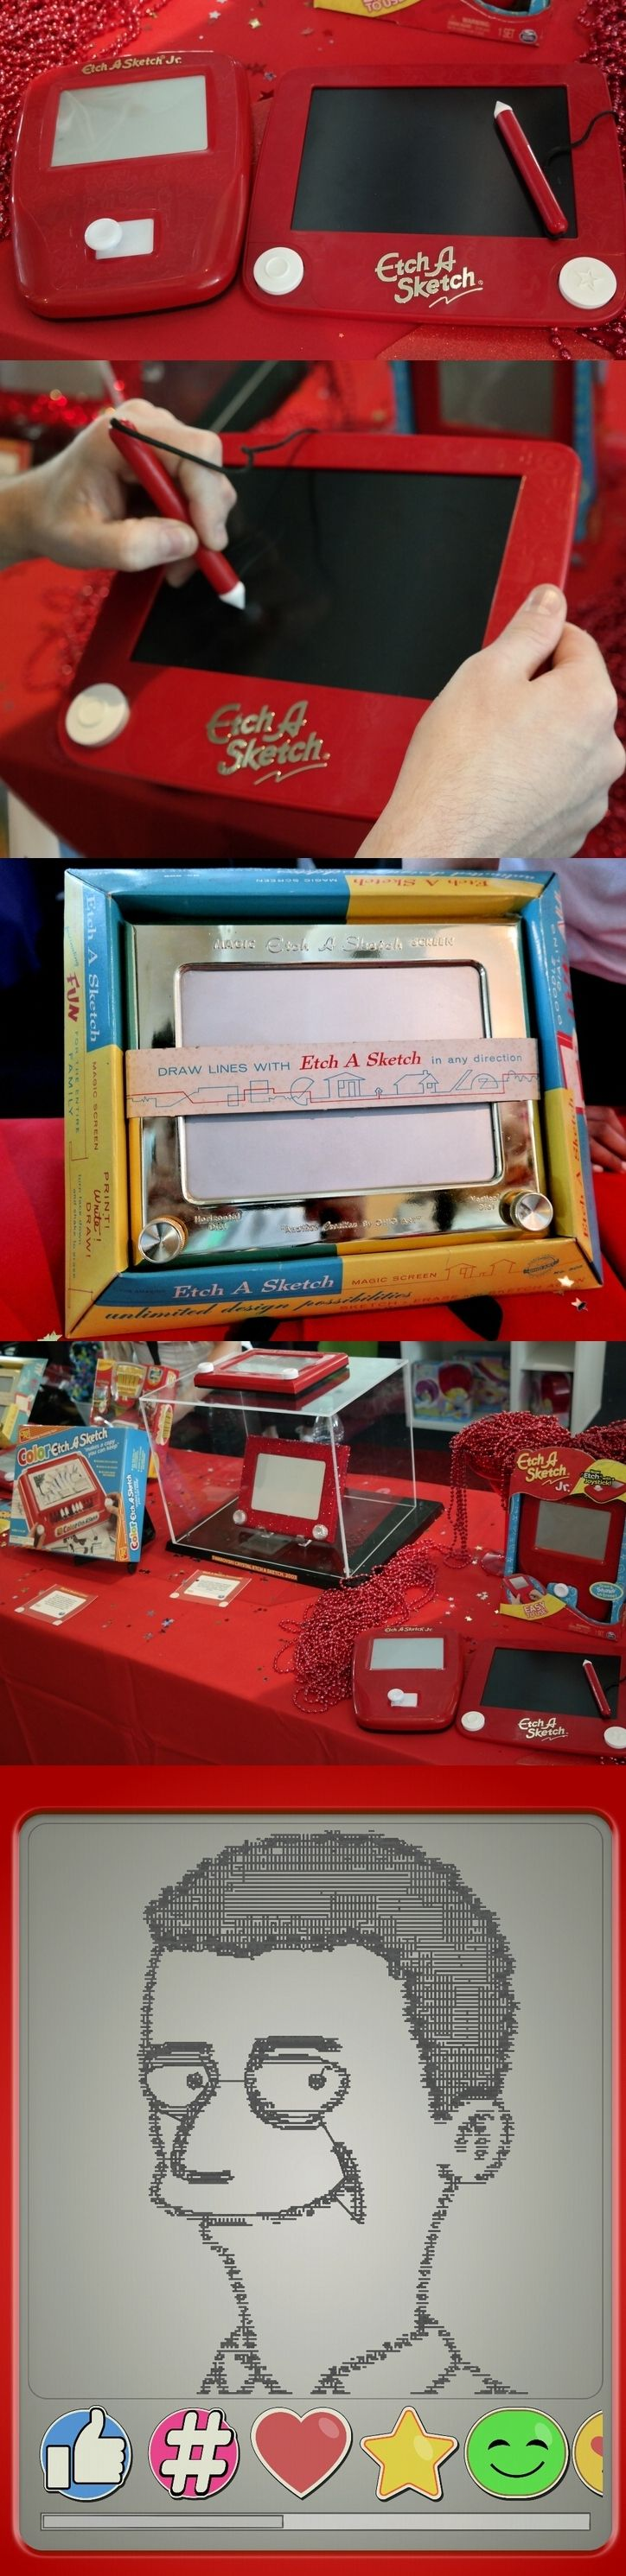 What did you do on Etch A Sketch Day? Spin Master celebrated the iconic drawing toy's birthday by showing off two new versions—the Joystick and the Freestyle Drawing Pad with Stylus—next to one of the original units that sold for $2.99 on July 12, 1960. One thing hasn't changed: You still turn them upside down and shake to erase the screen. New apps let users turn photos into Etch A Sketch art. Spin Master bought the brand from the Ohio Art Co. in 2016. #sweetsuite17 #shakeyouretch…